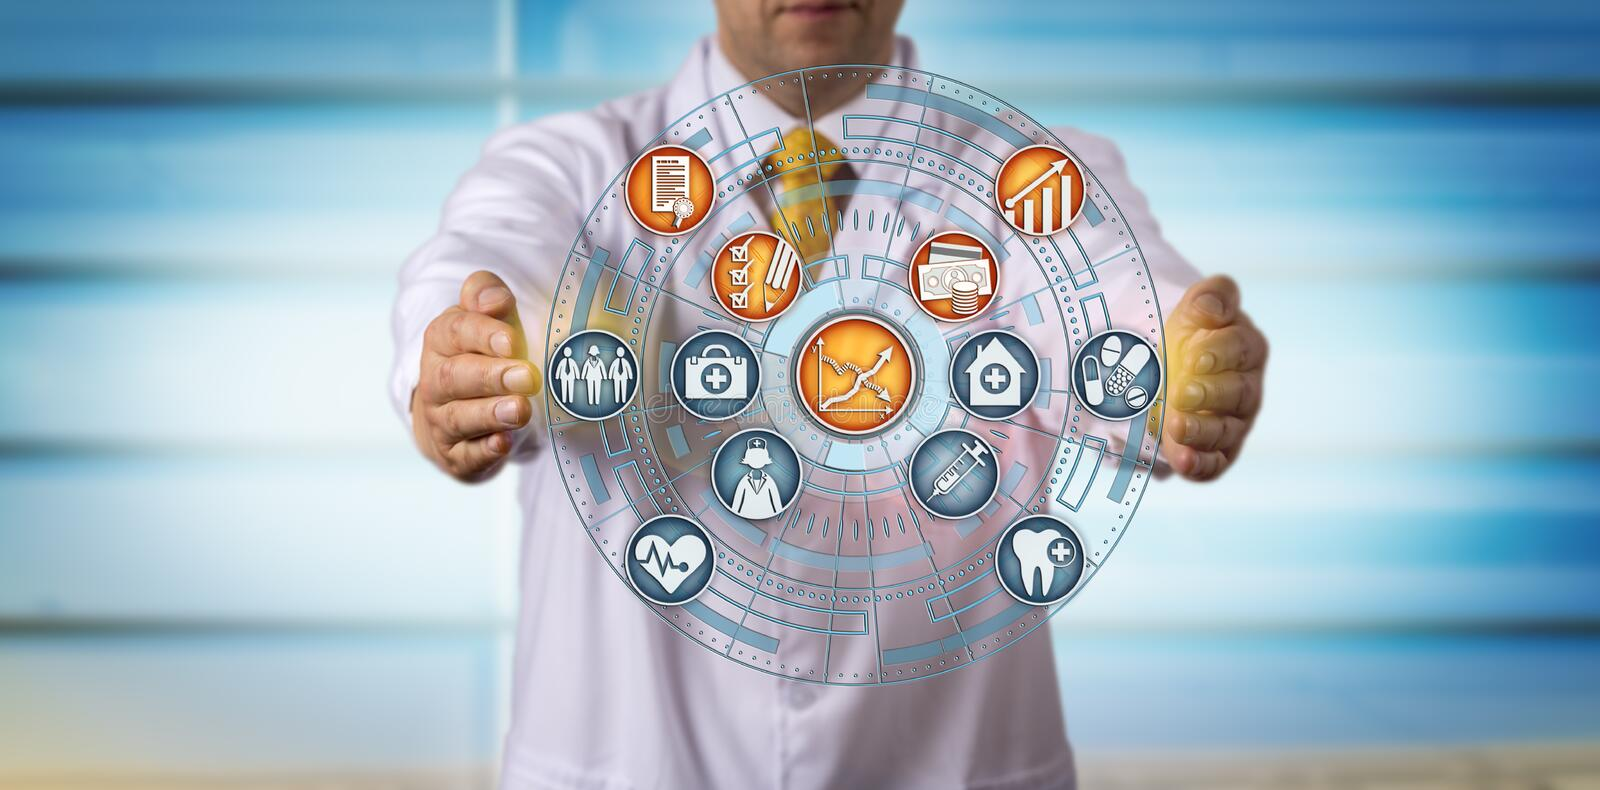 Projecting Improved Profits From Value-Based Care. Unrecognizable doctor of medicine projecting improved profits and efficiency from value-based care. Healthcare stock images